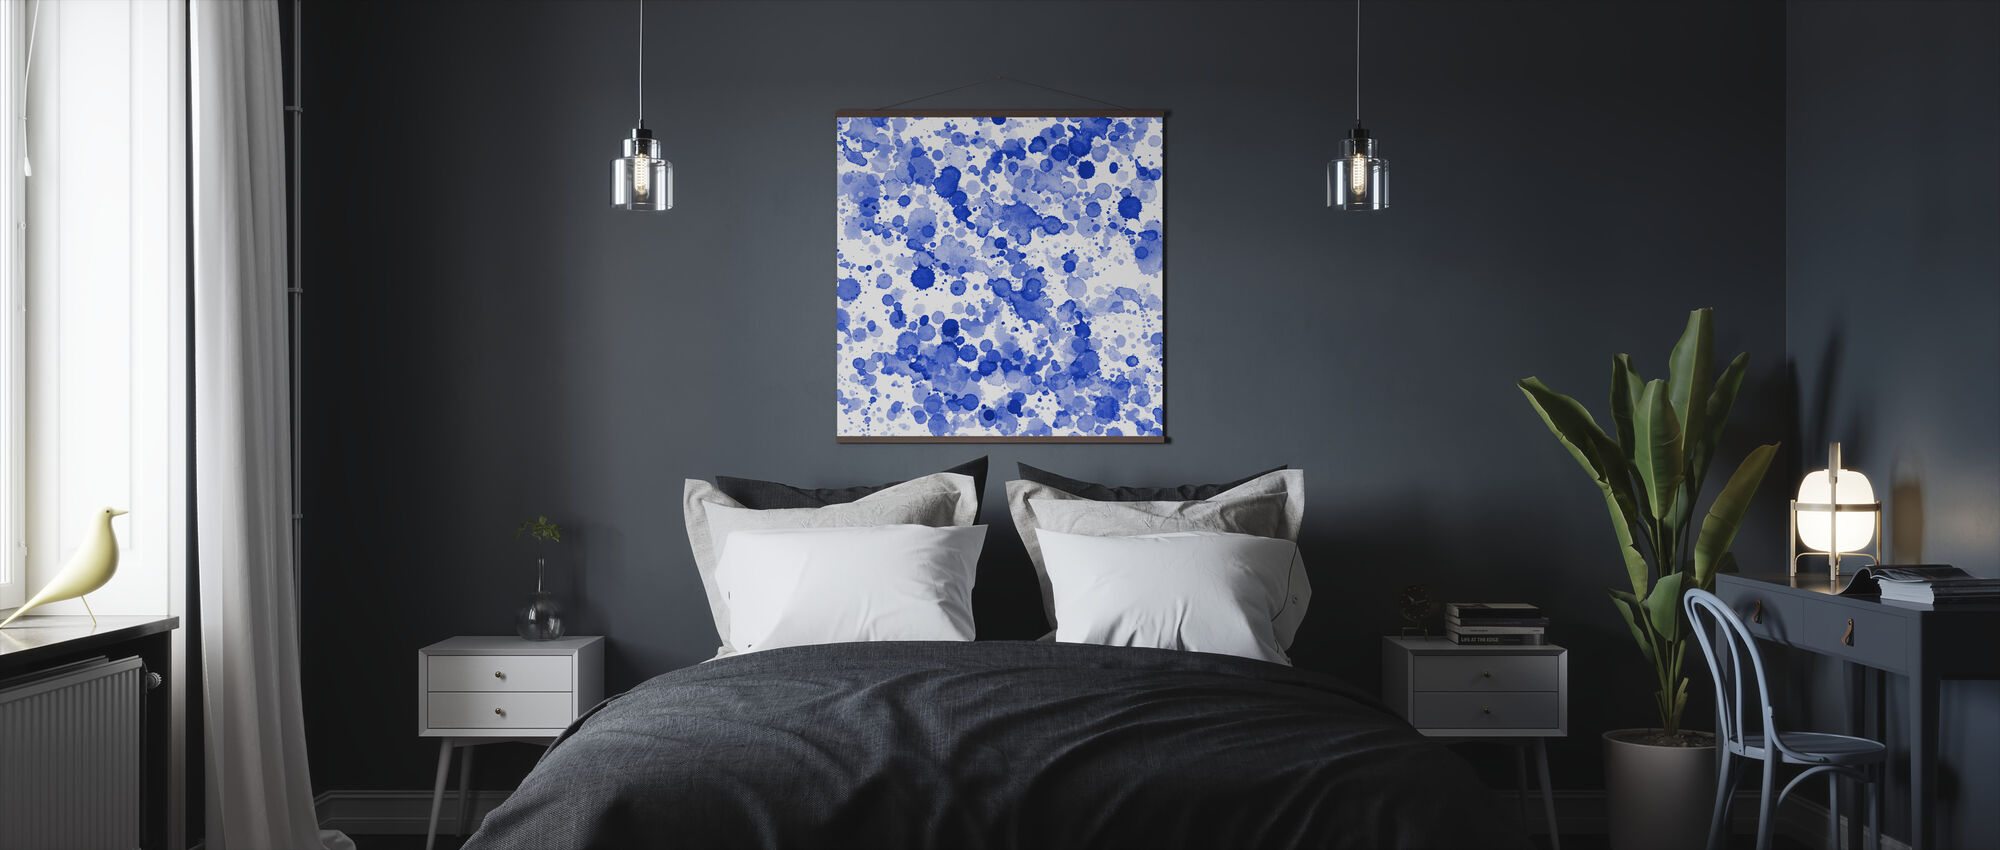 Blue Drops - Poster - Bedroom